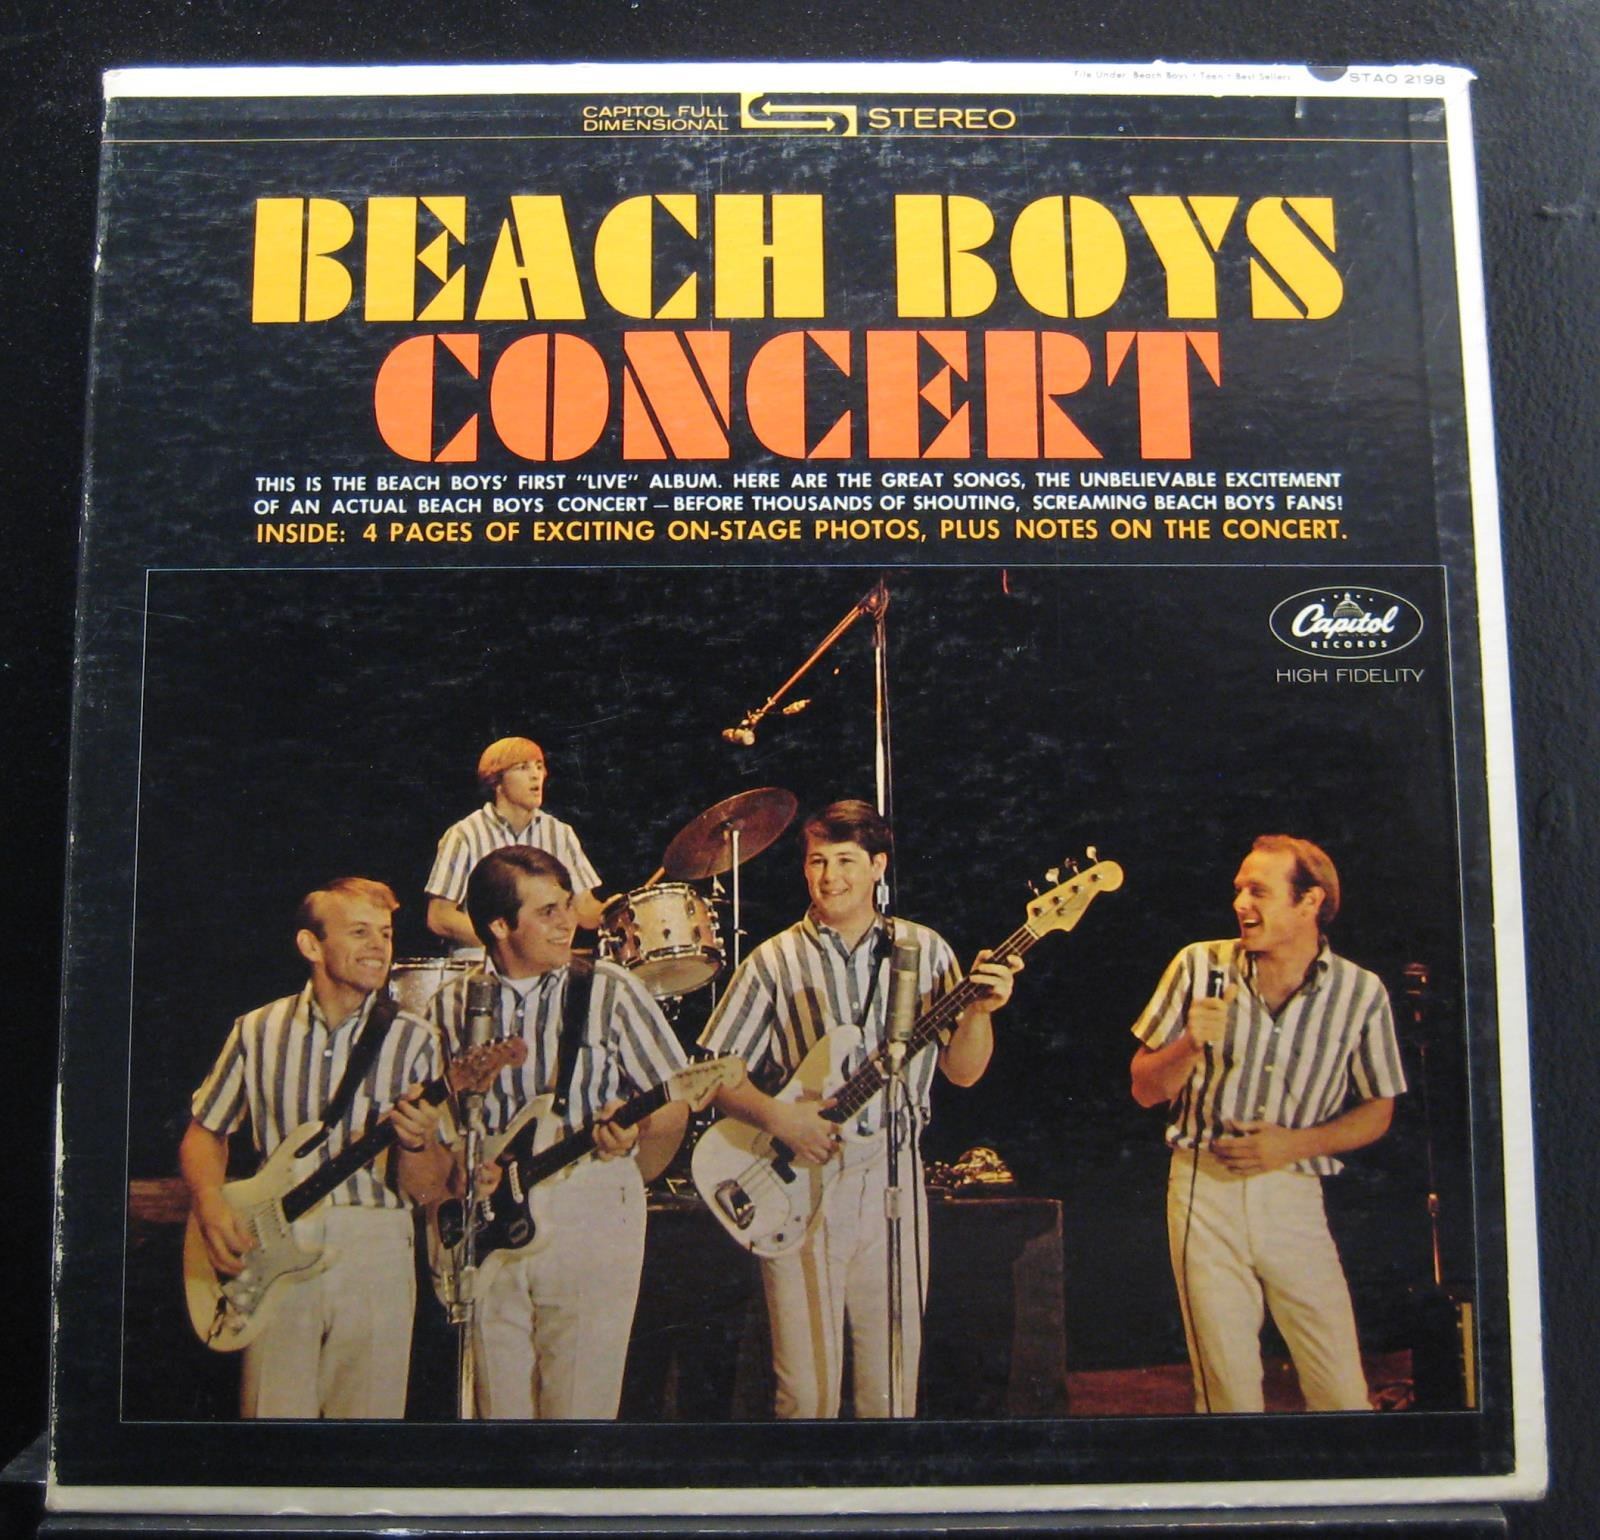 Beach Boys Concert by Capitol Records